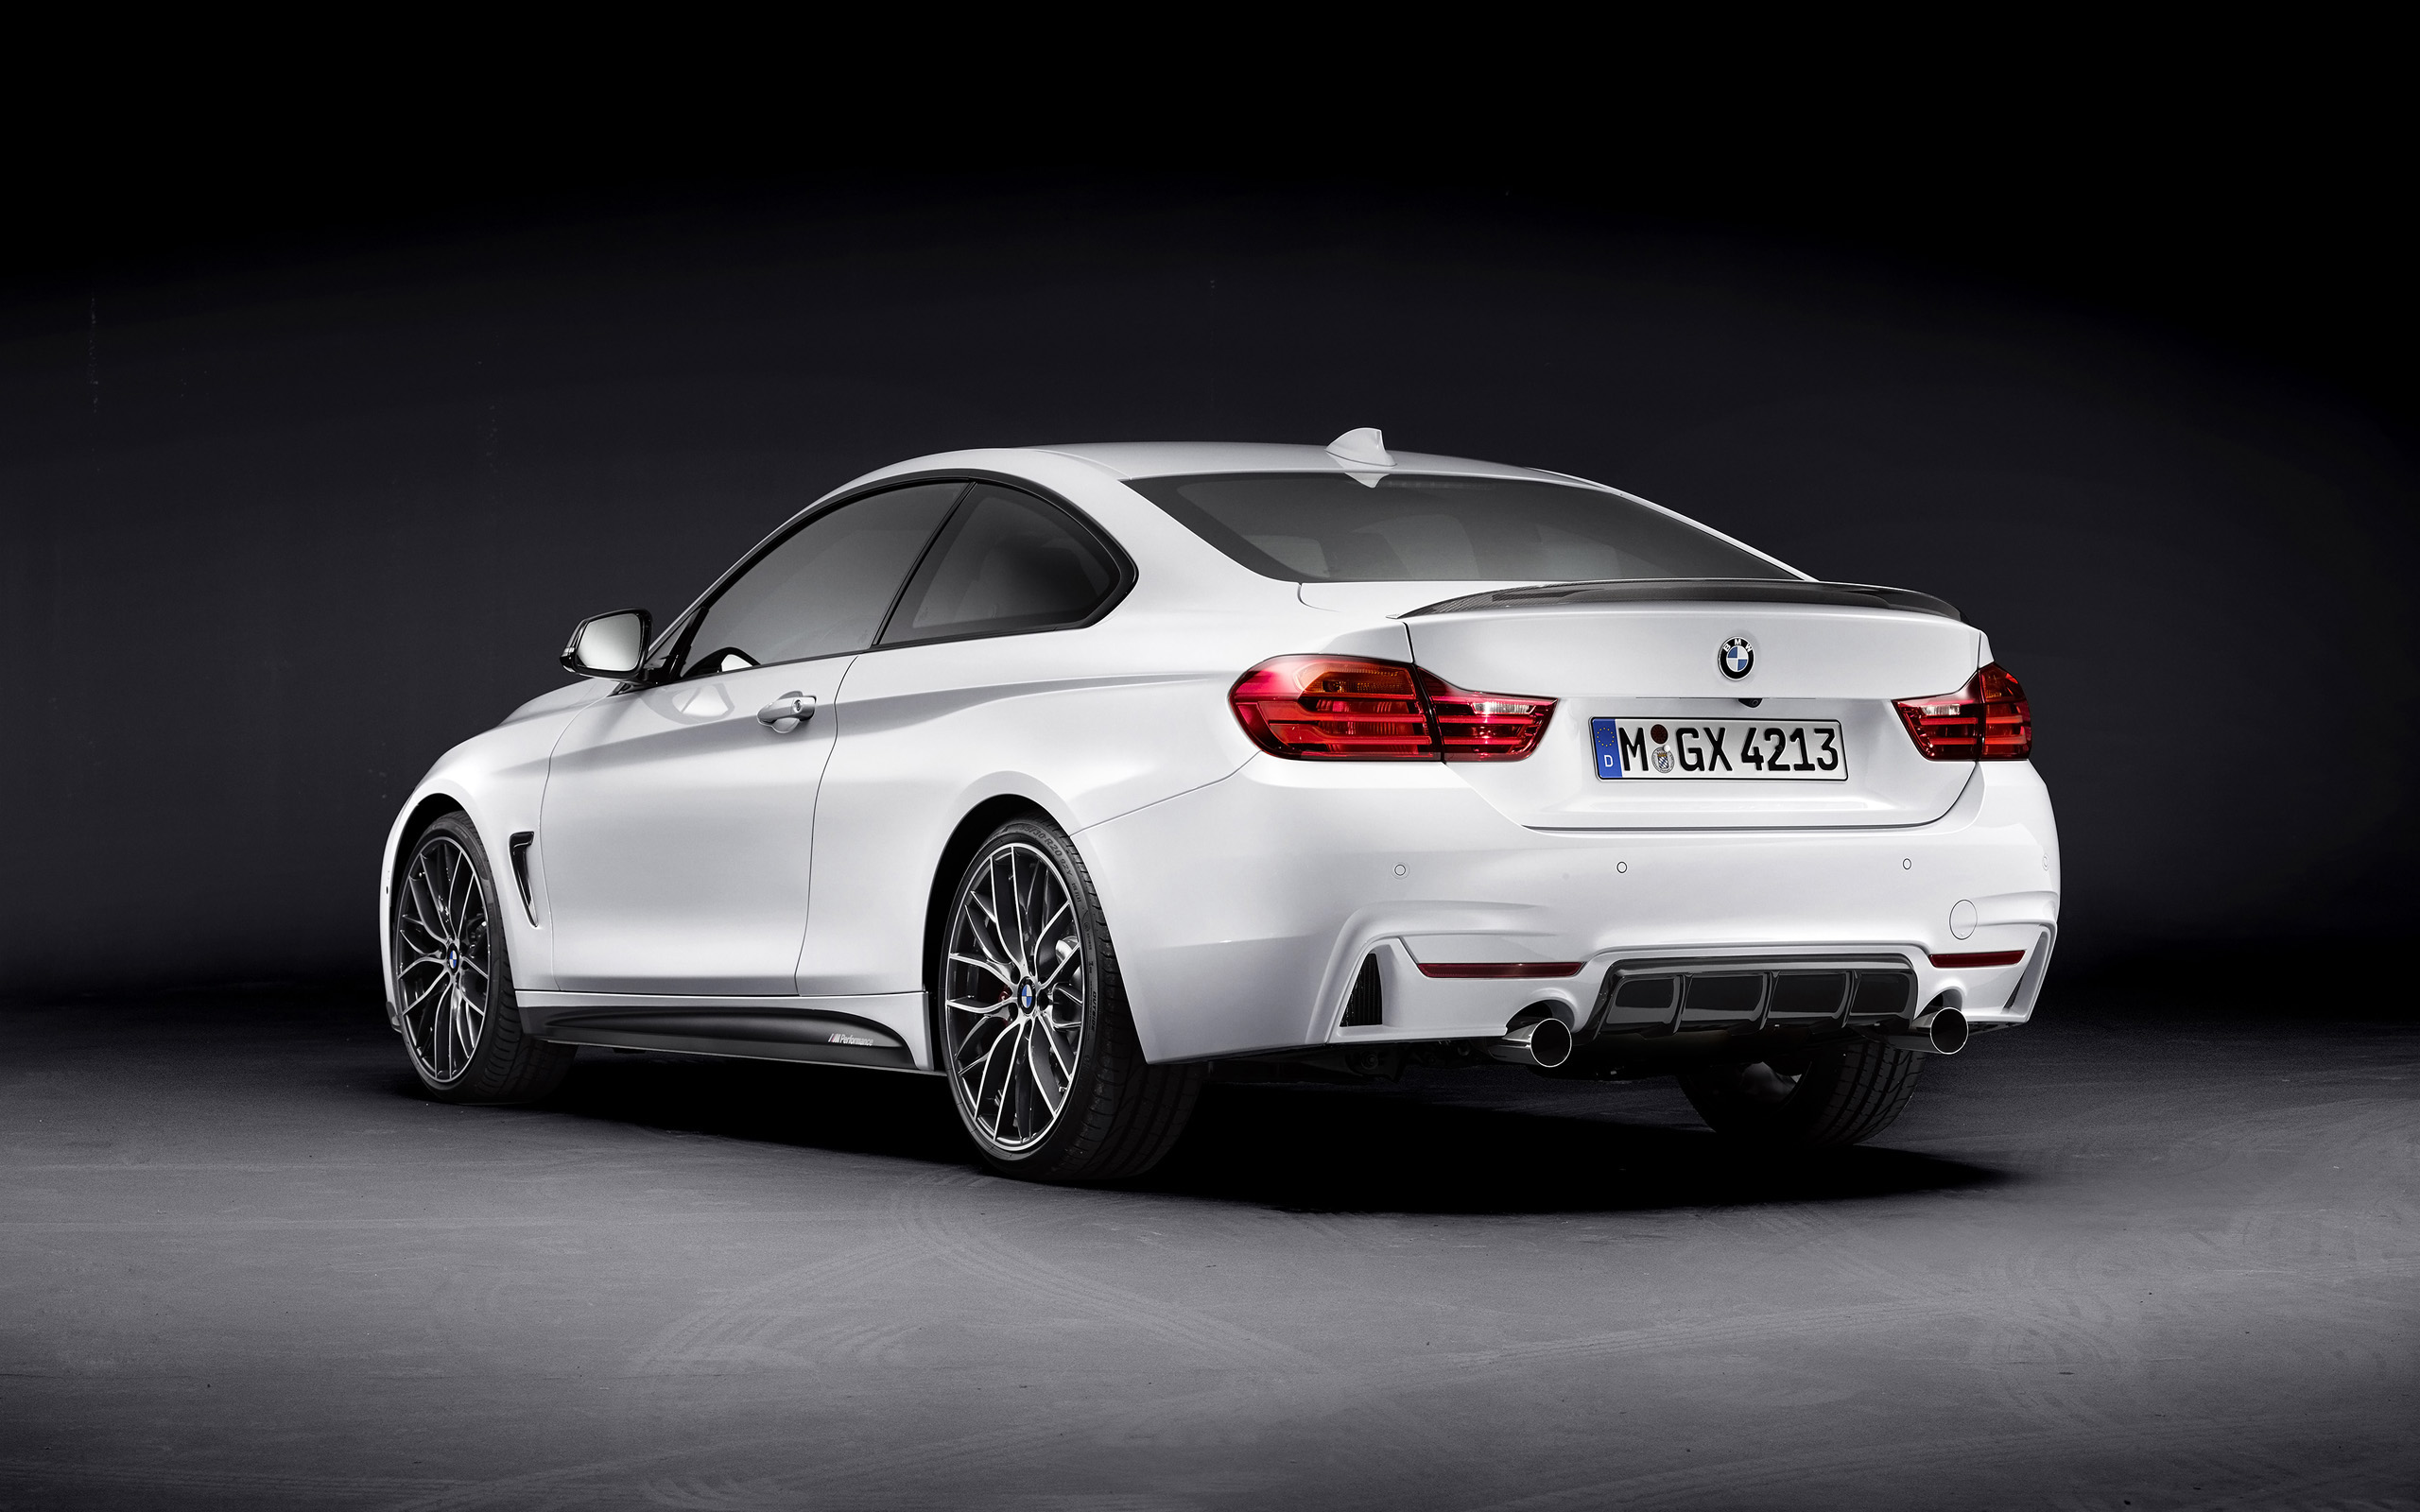 2014 bmw 4 series coupe h wallpaper 2560x1600 136690 wallpaperup. Black Bedroom Furniture Sets. Home Design Ideas